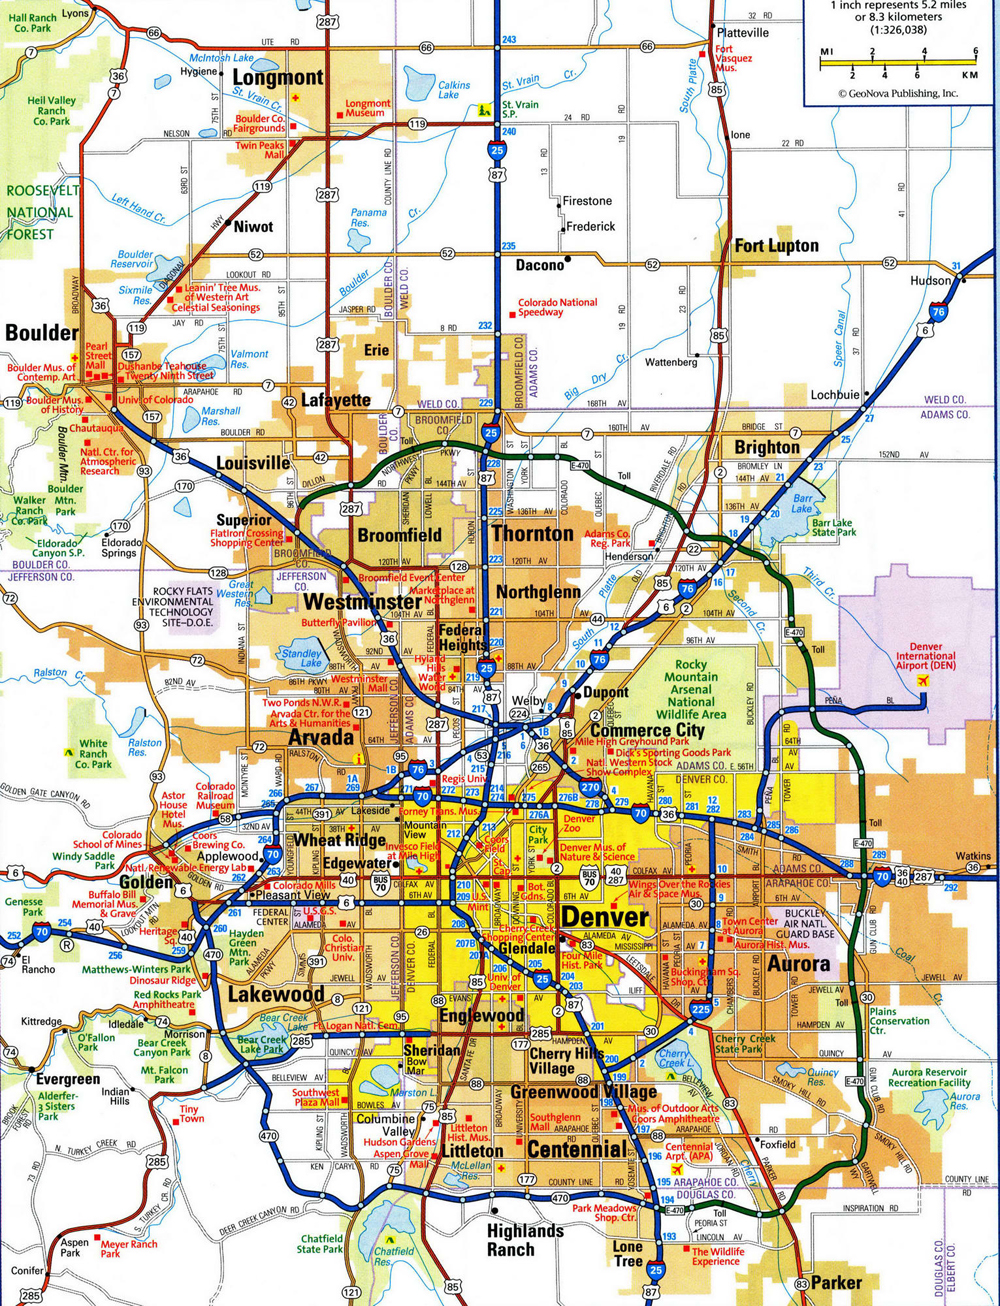 map of metro denver area Metro Denver Map map of metro denver area